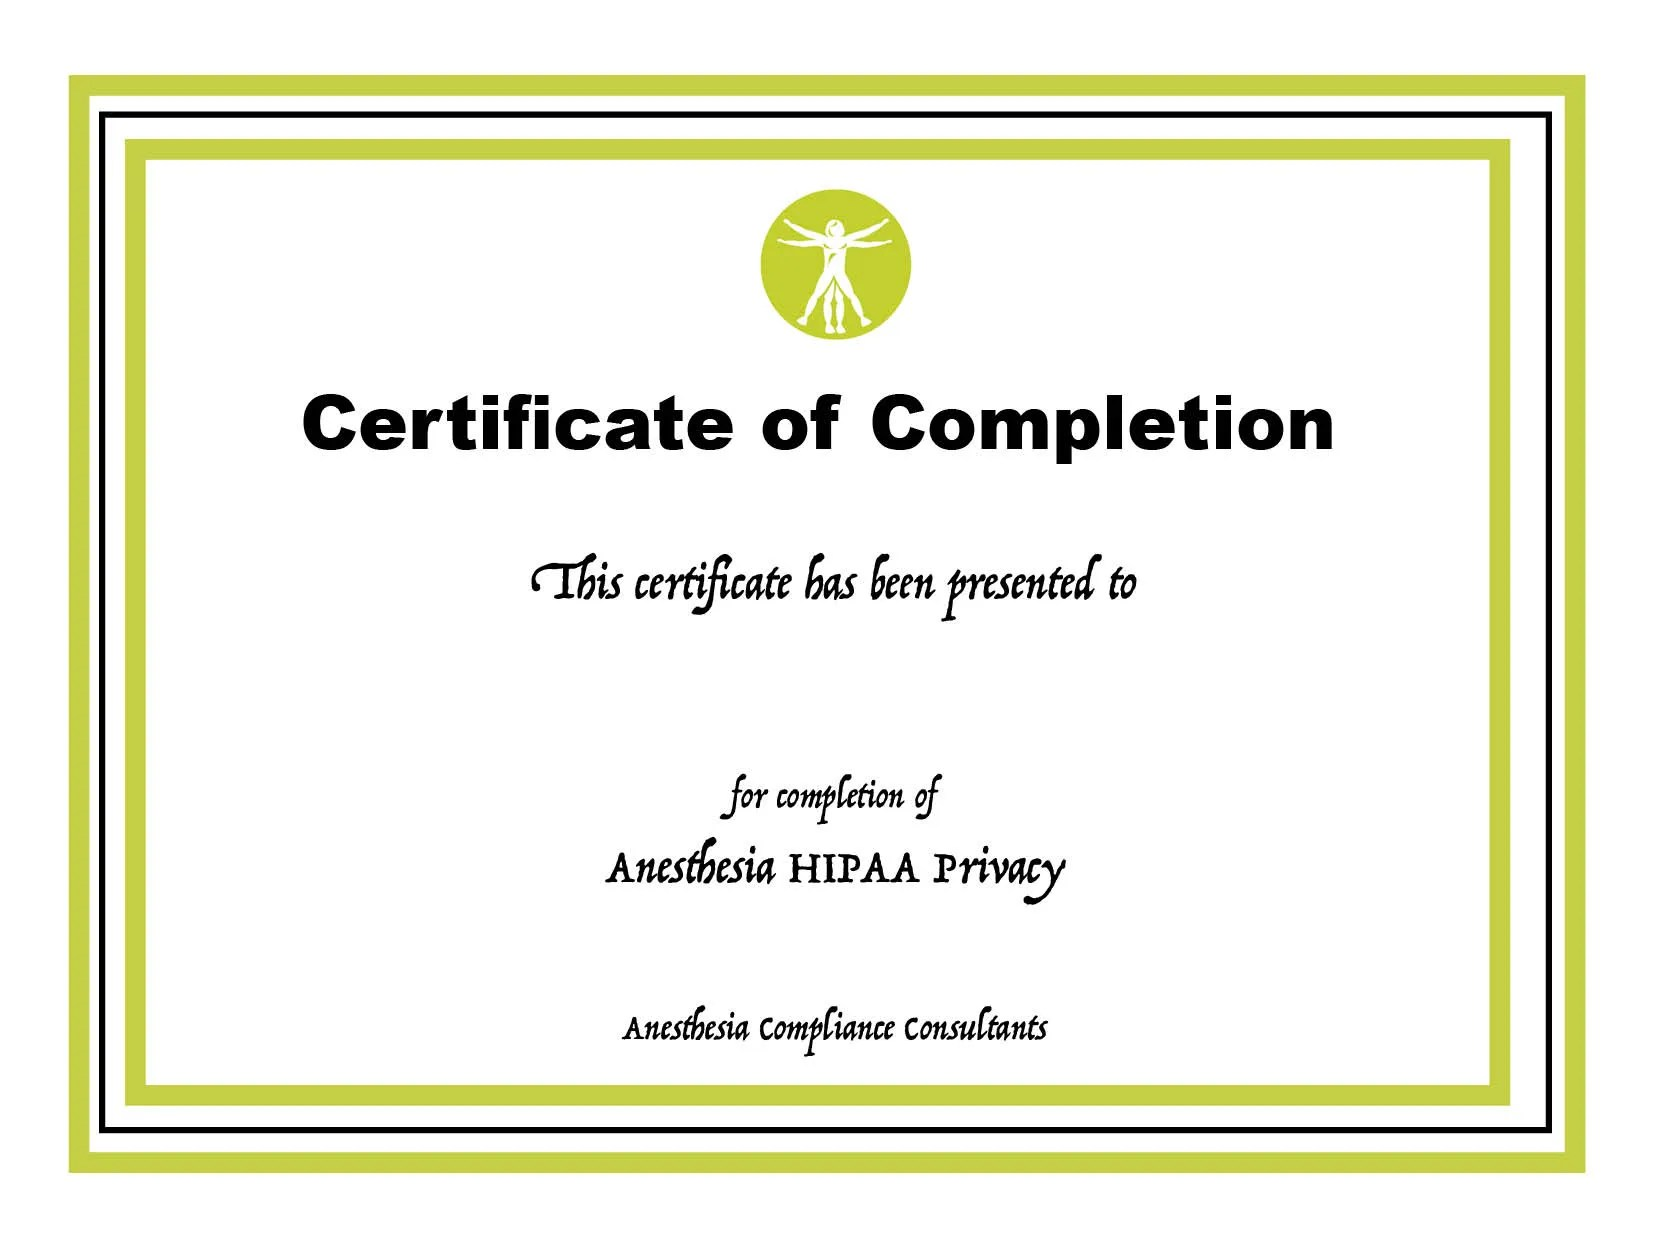 HIPAA Privacy Certificate